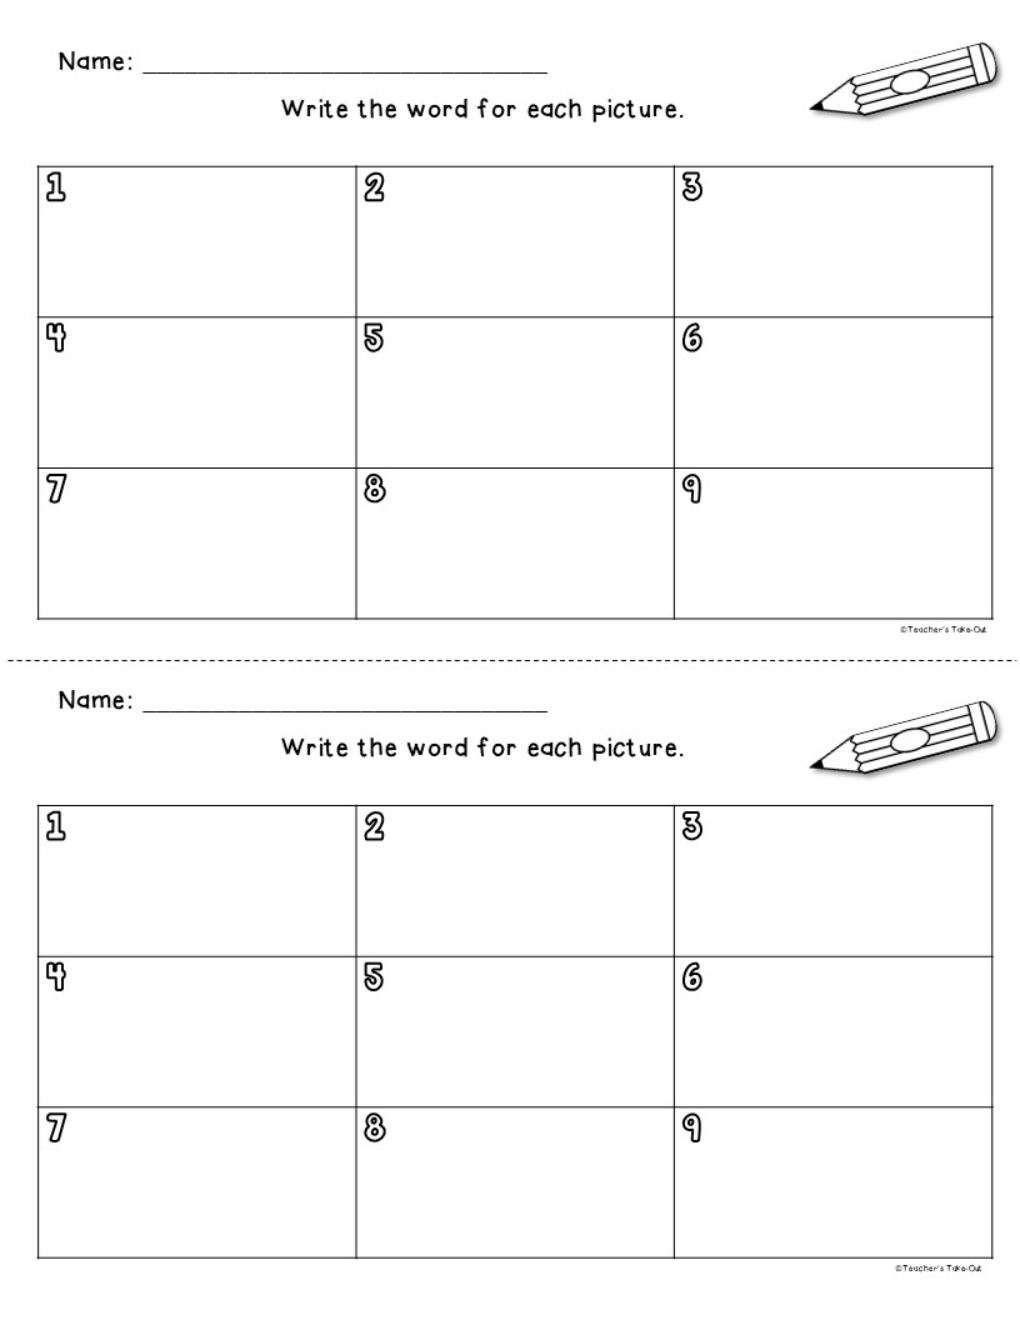 Short Vowels Picture Cards for a Writing Center